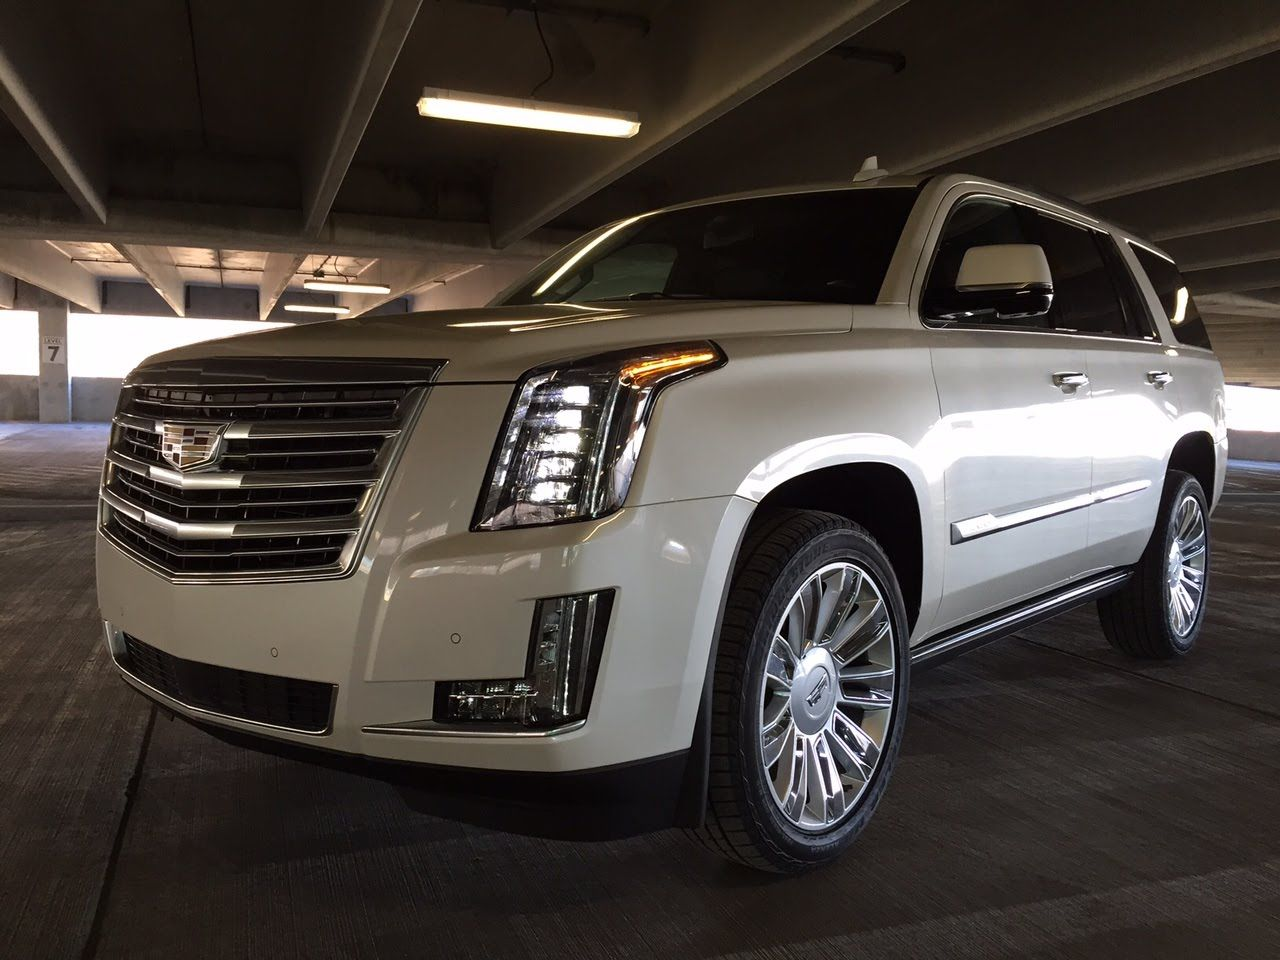 Escalade with the attitude wearing a custom grille s